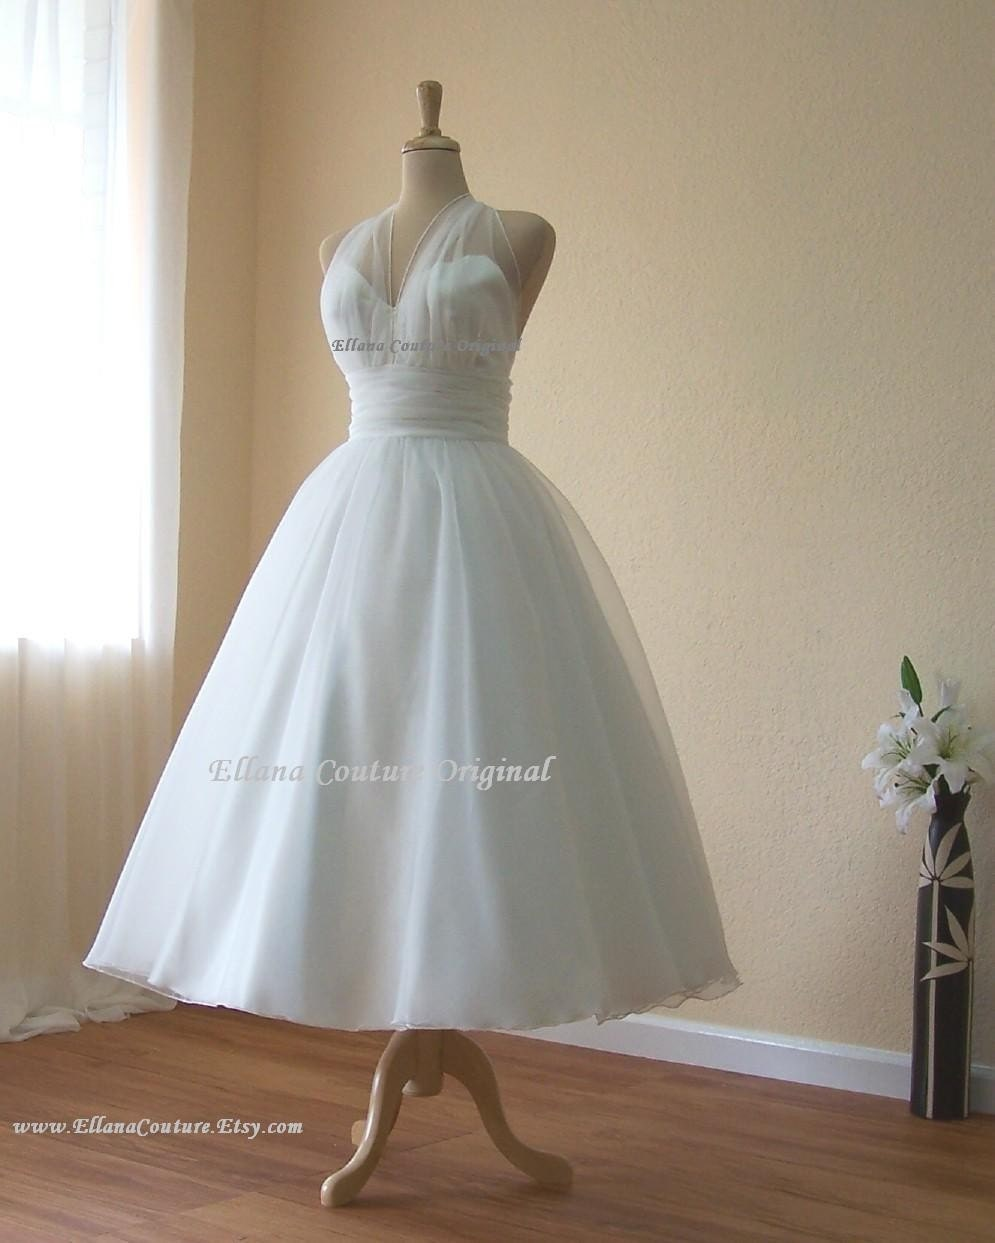 Retro Inspired Tea Length Wedding Dress Vintage Style Organza